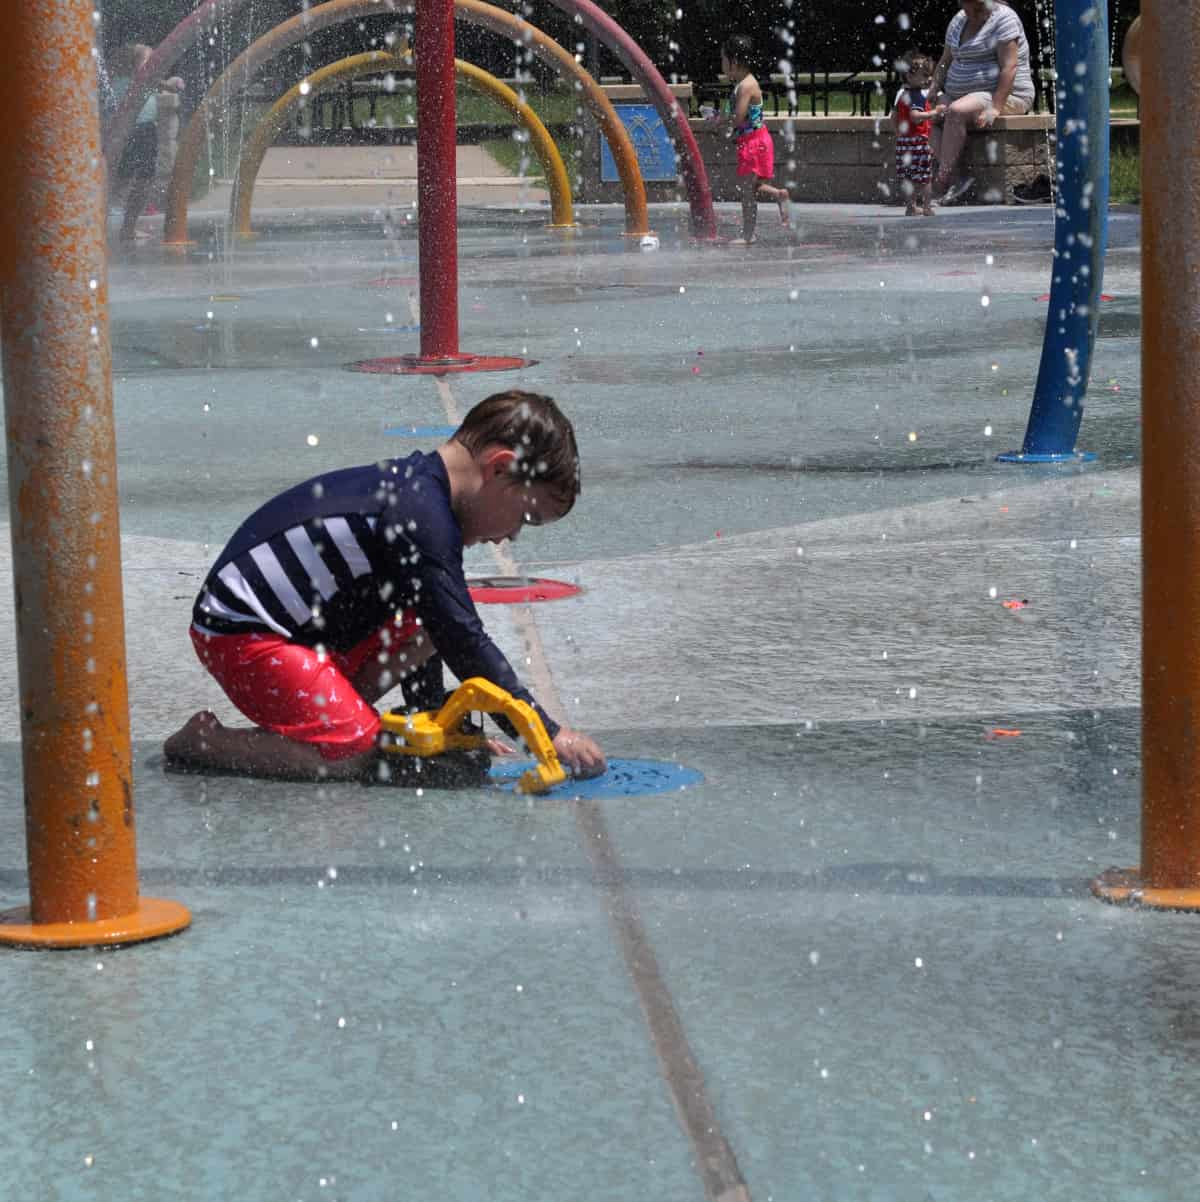 Playing with toy truck at splashpad